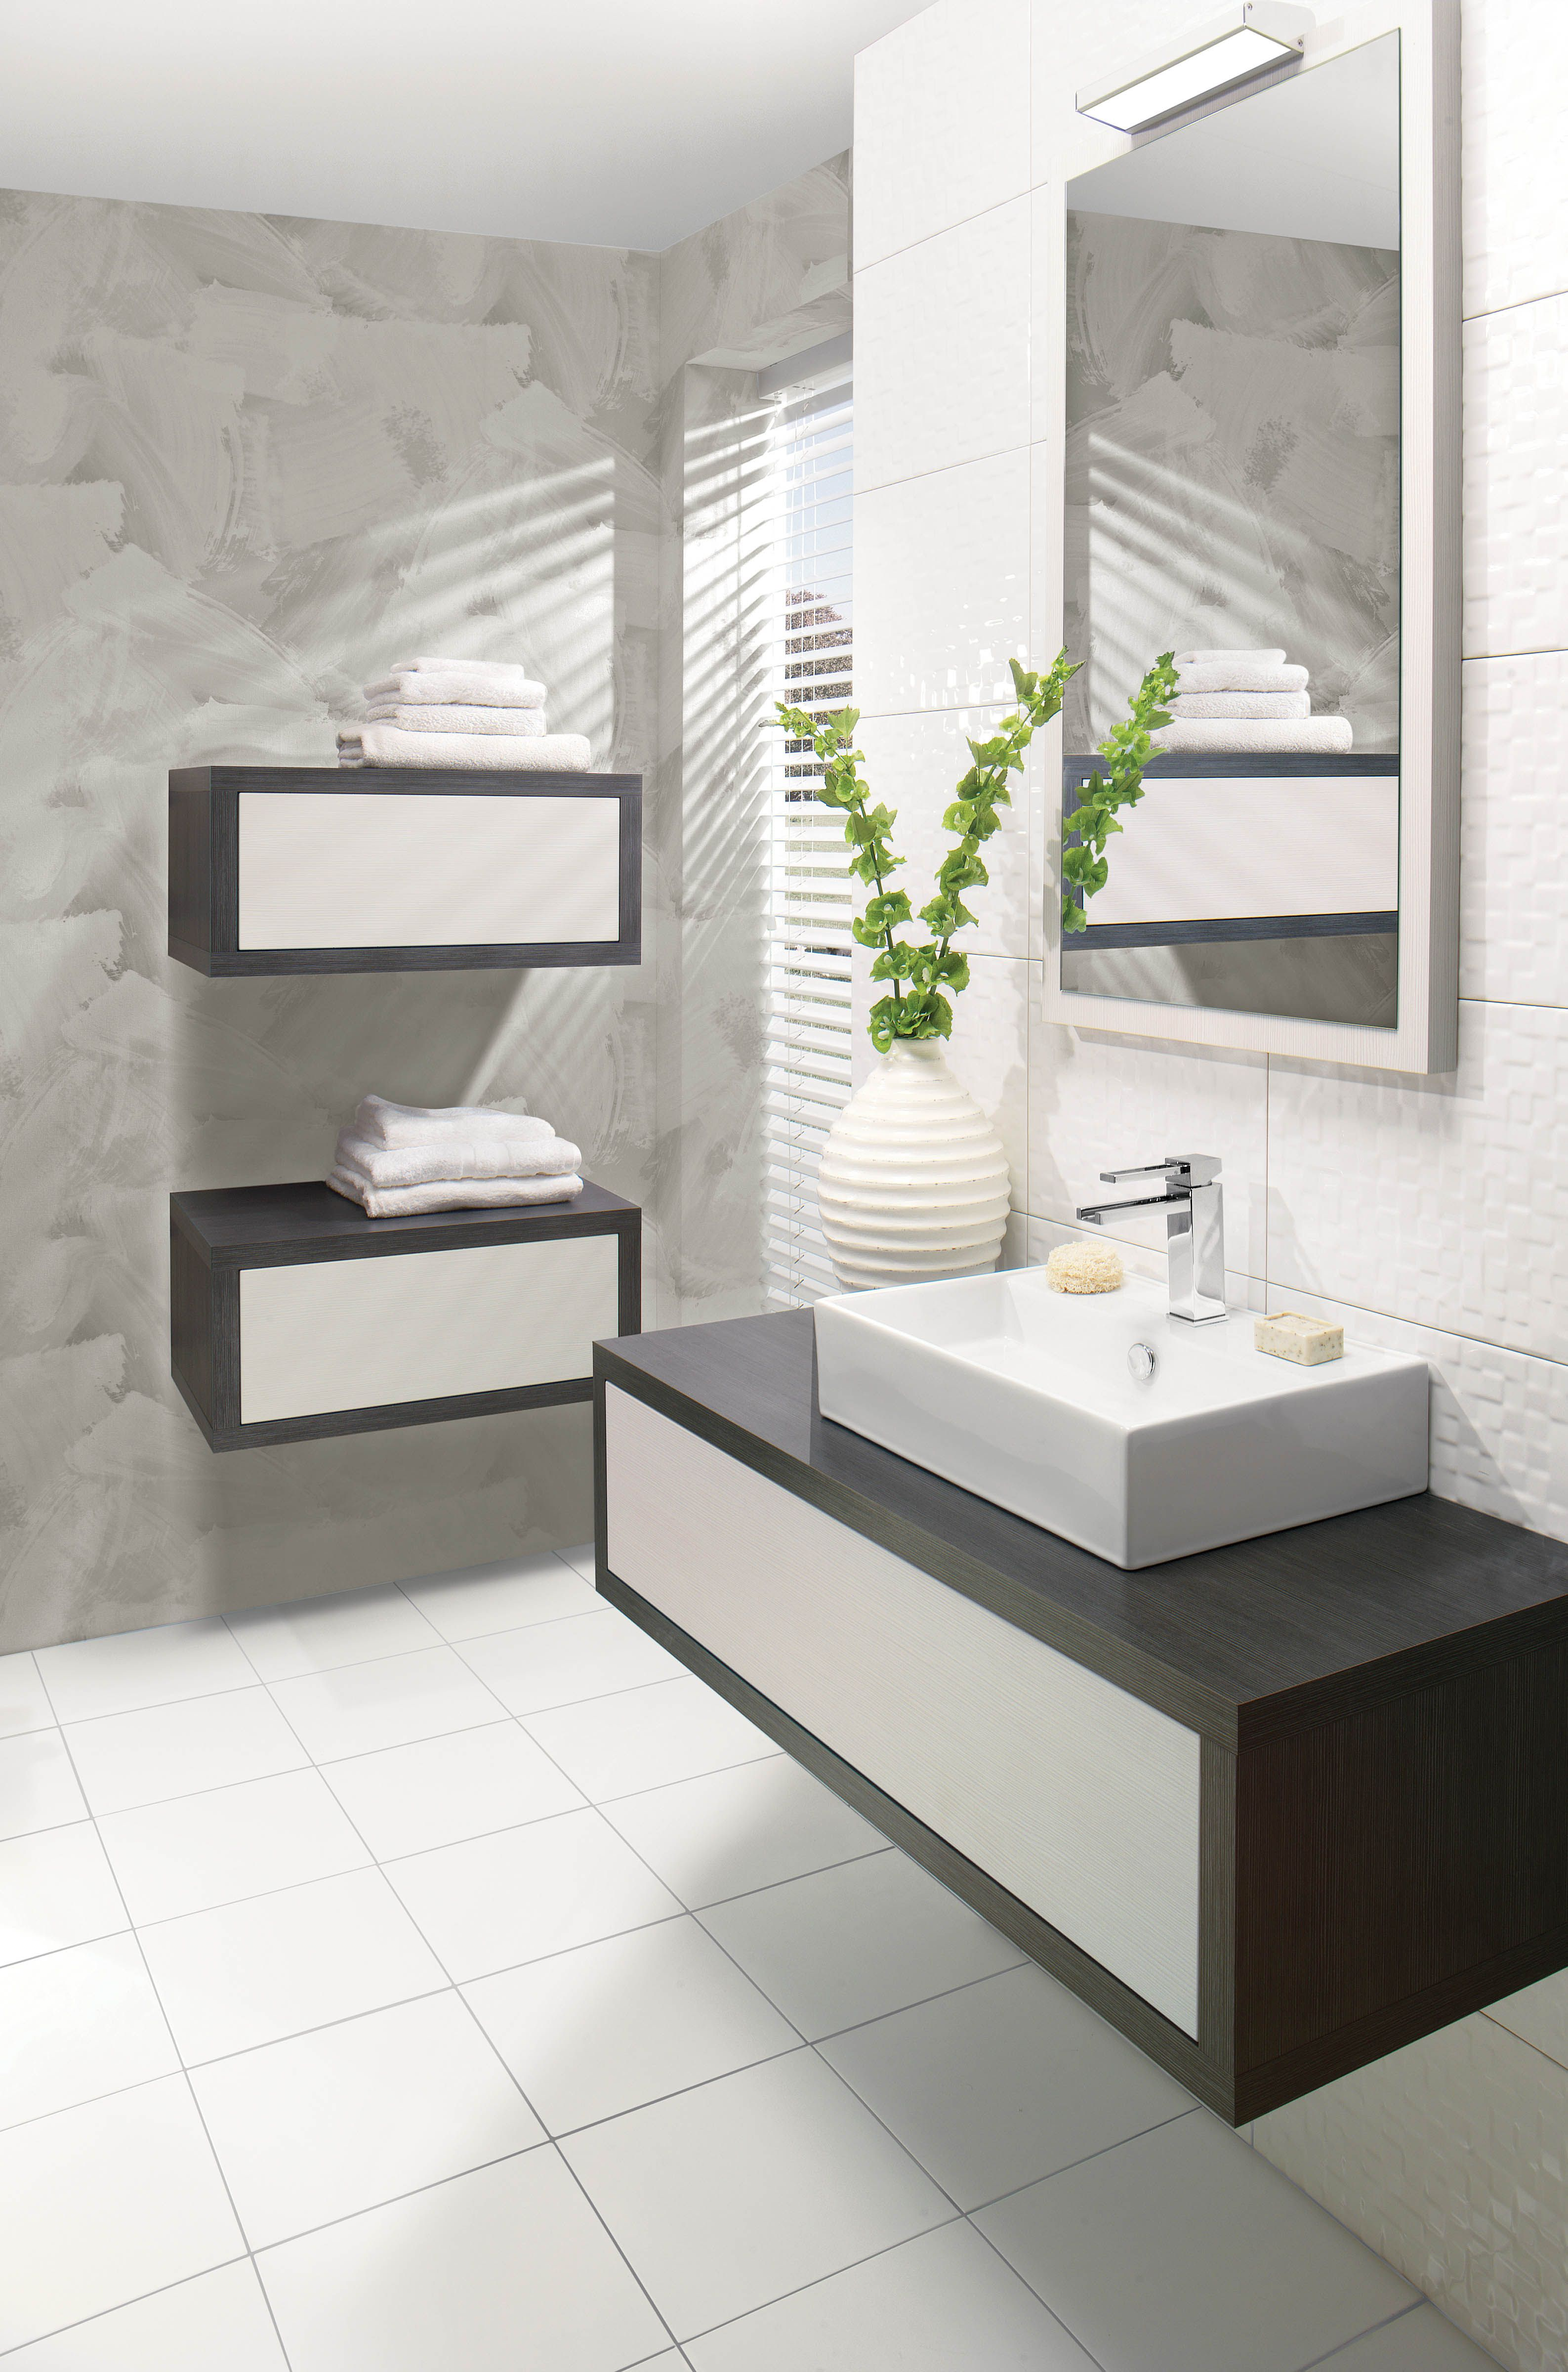 Touch Steel Bathroom Furniture Range from Crosswater http